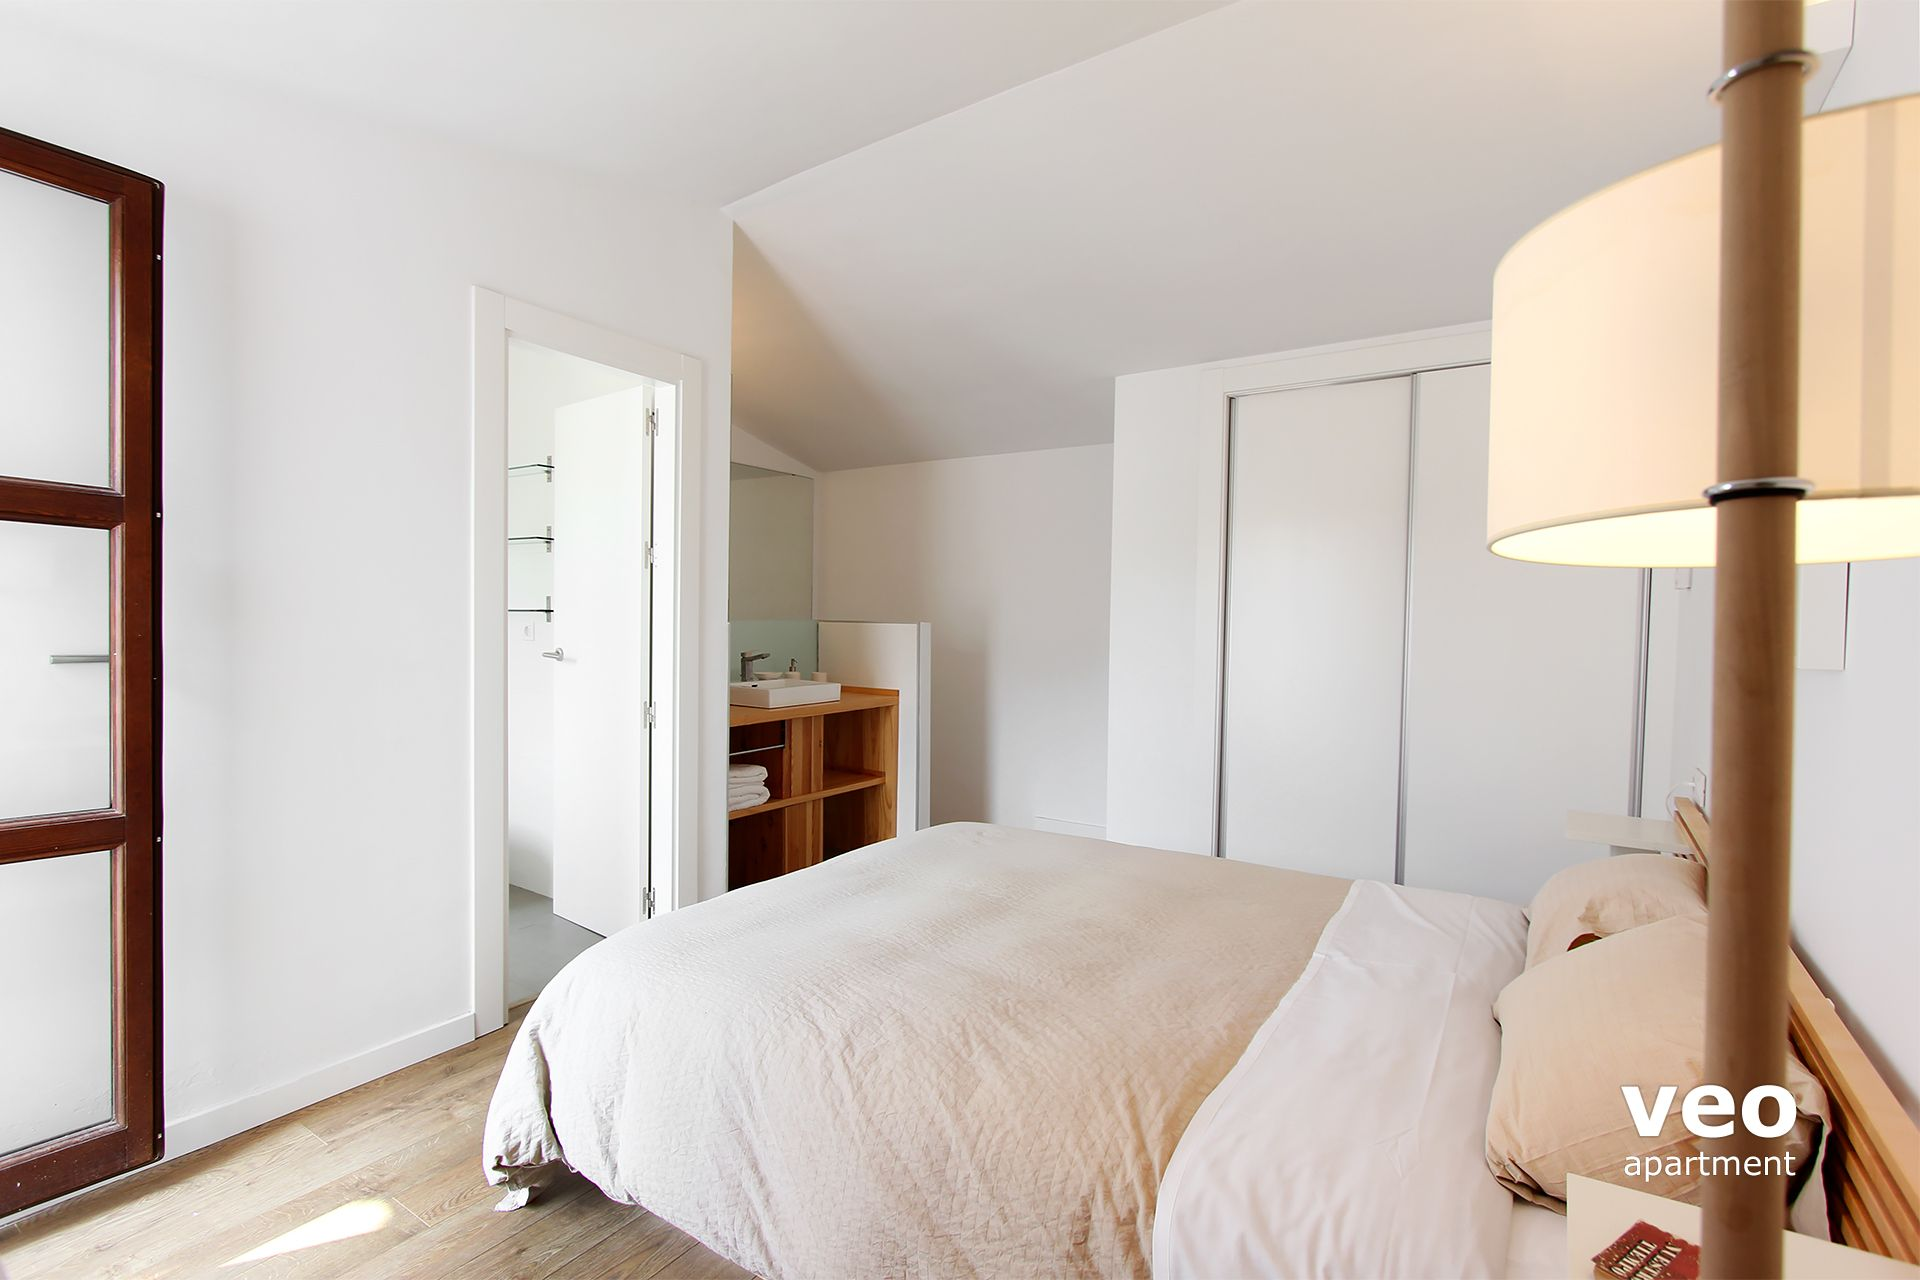 The Door Opens To The Seville Apartment   Bedroom With Double Bed, Built In  Wardrobe And En Suite ...